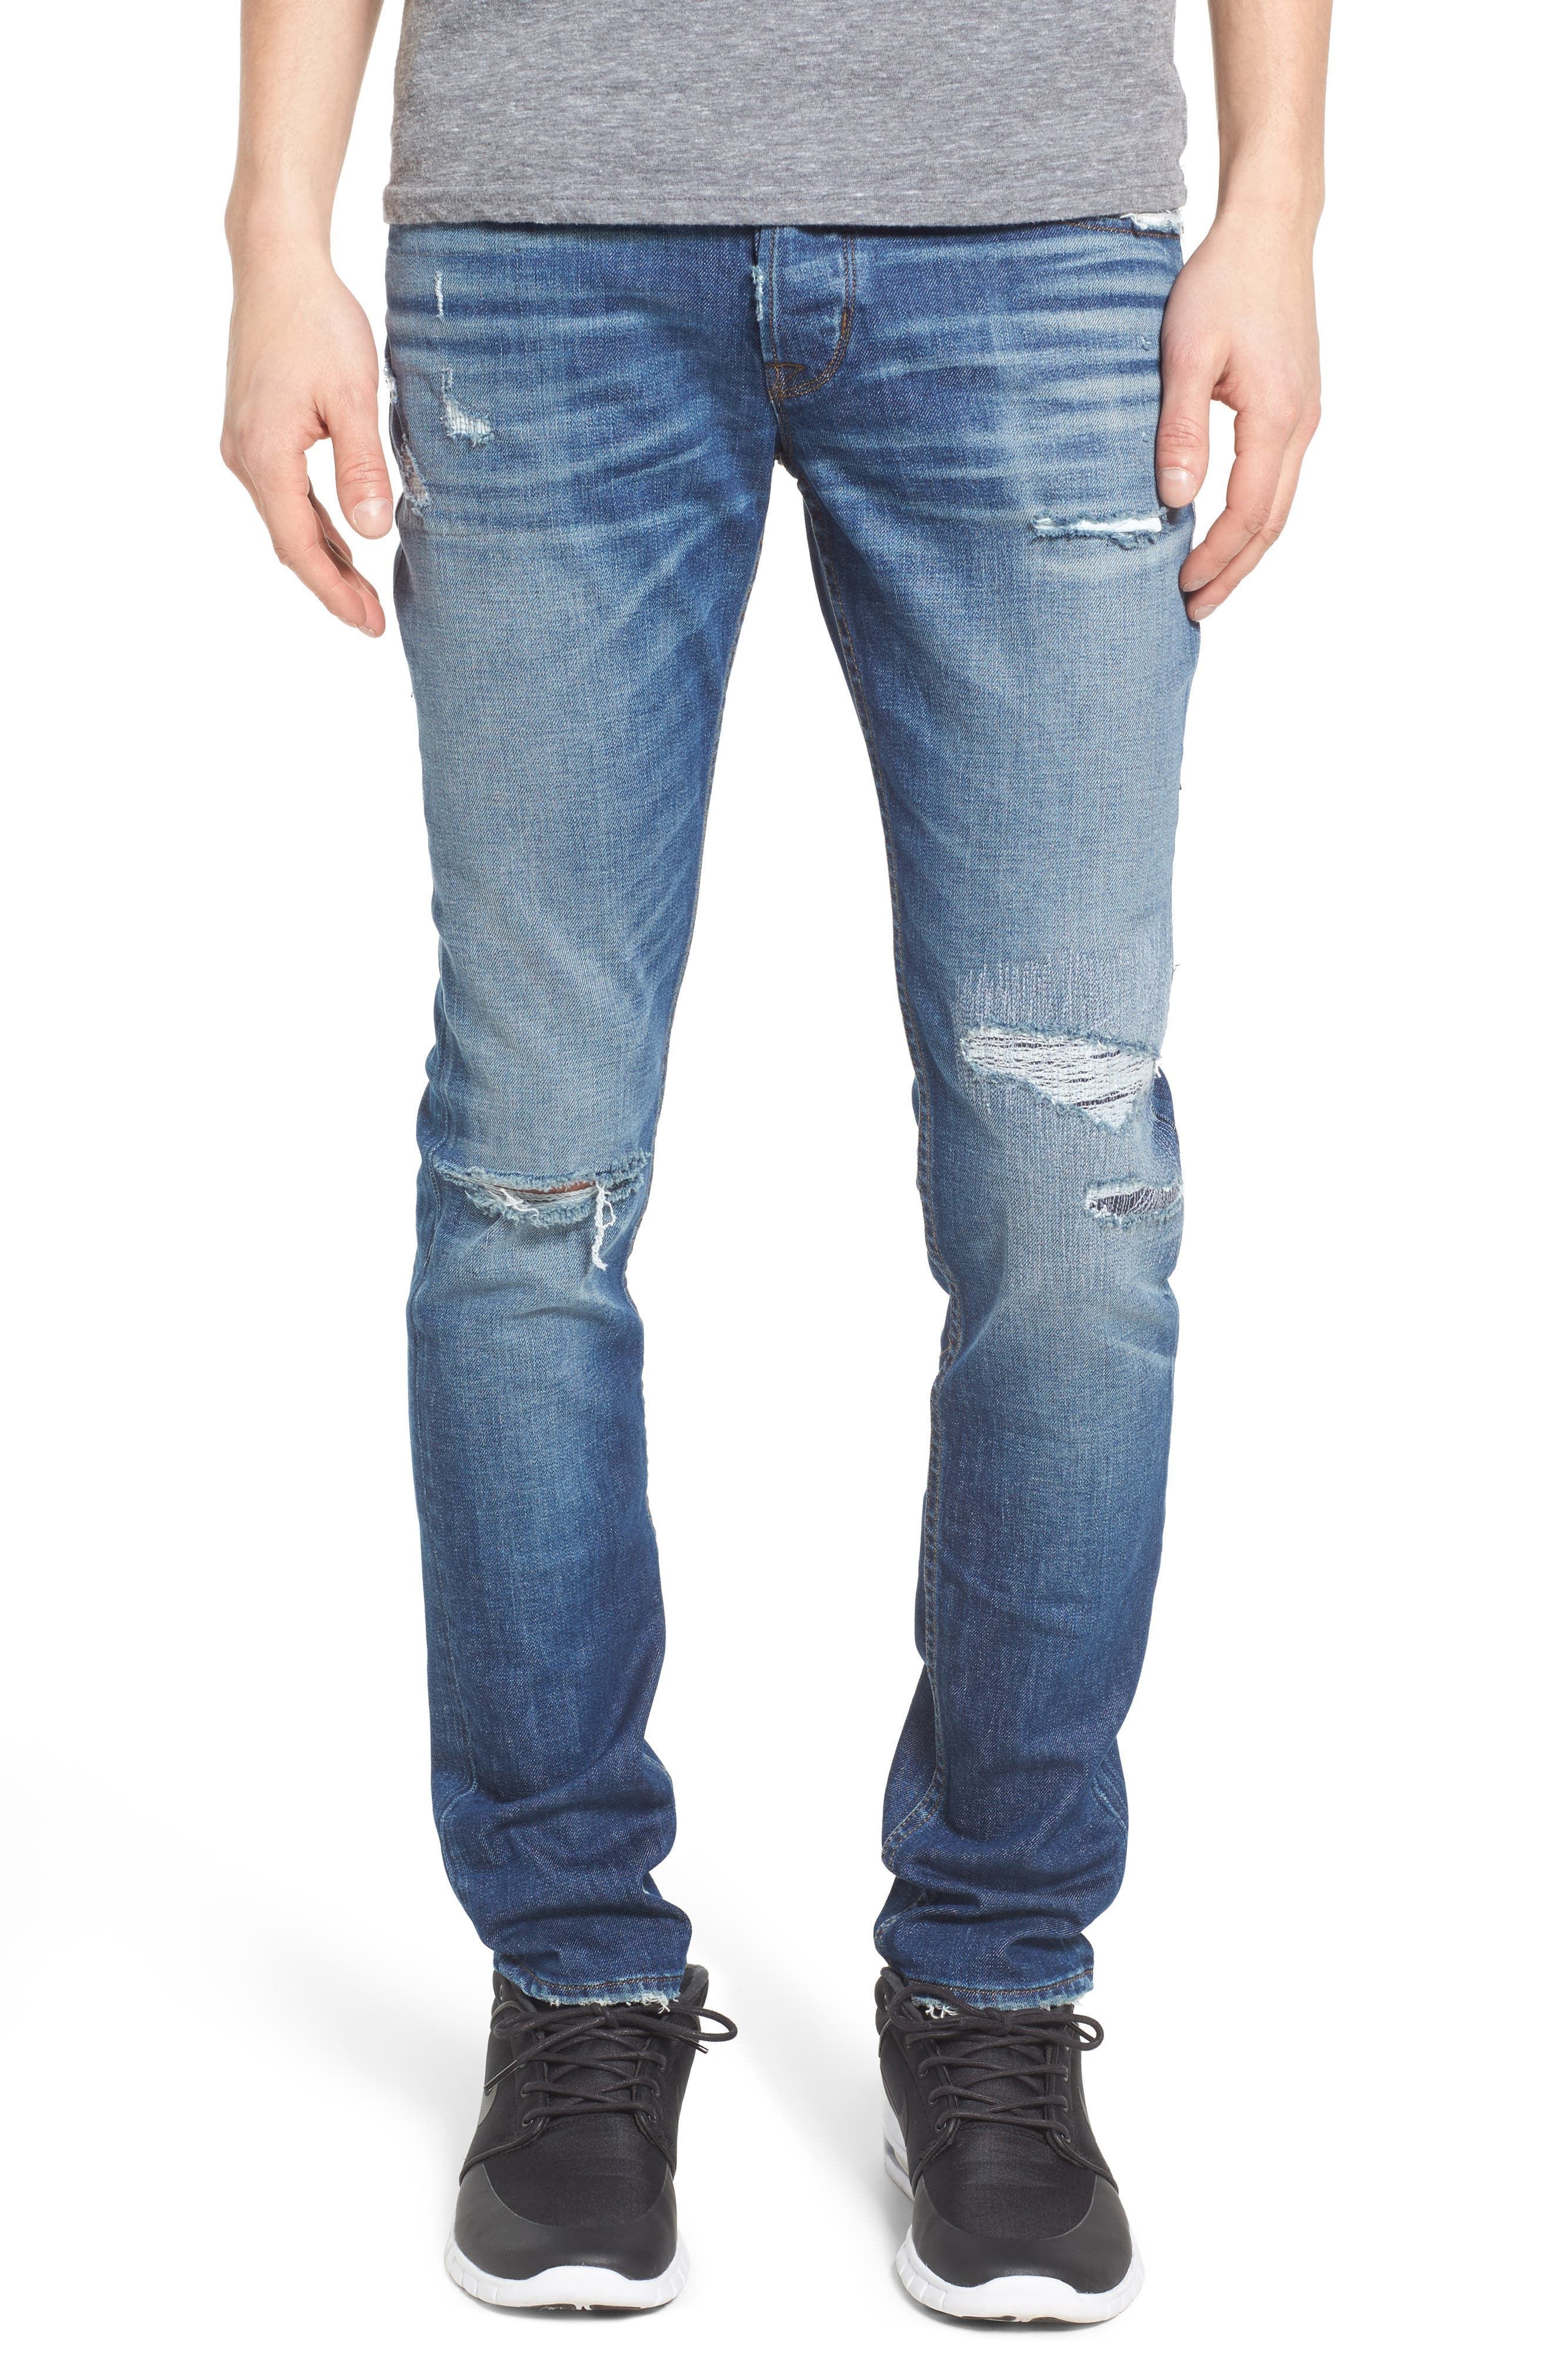 Axl Skinny Fit Jeans,                             Main thumbnail 1, color,                             422